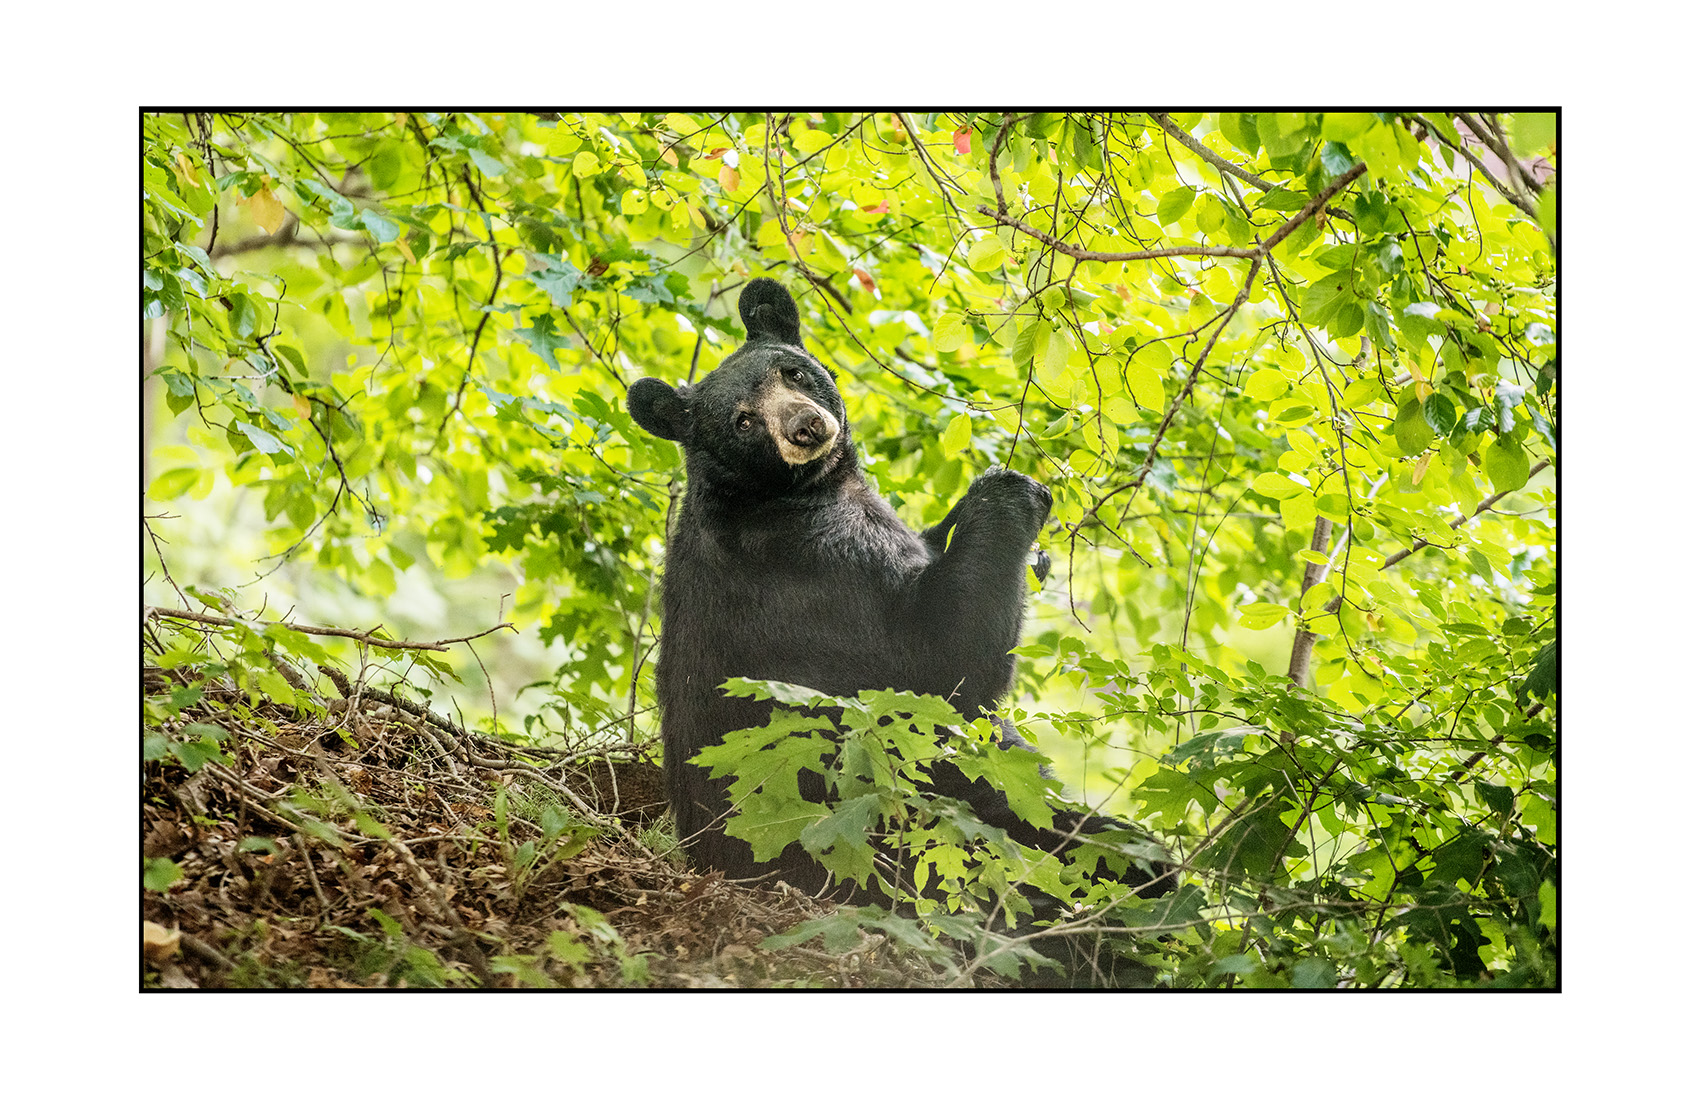 Snacking Black Bear